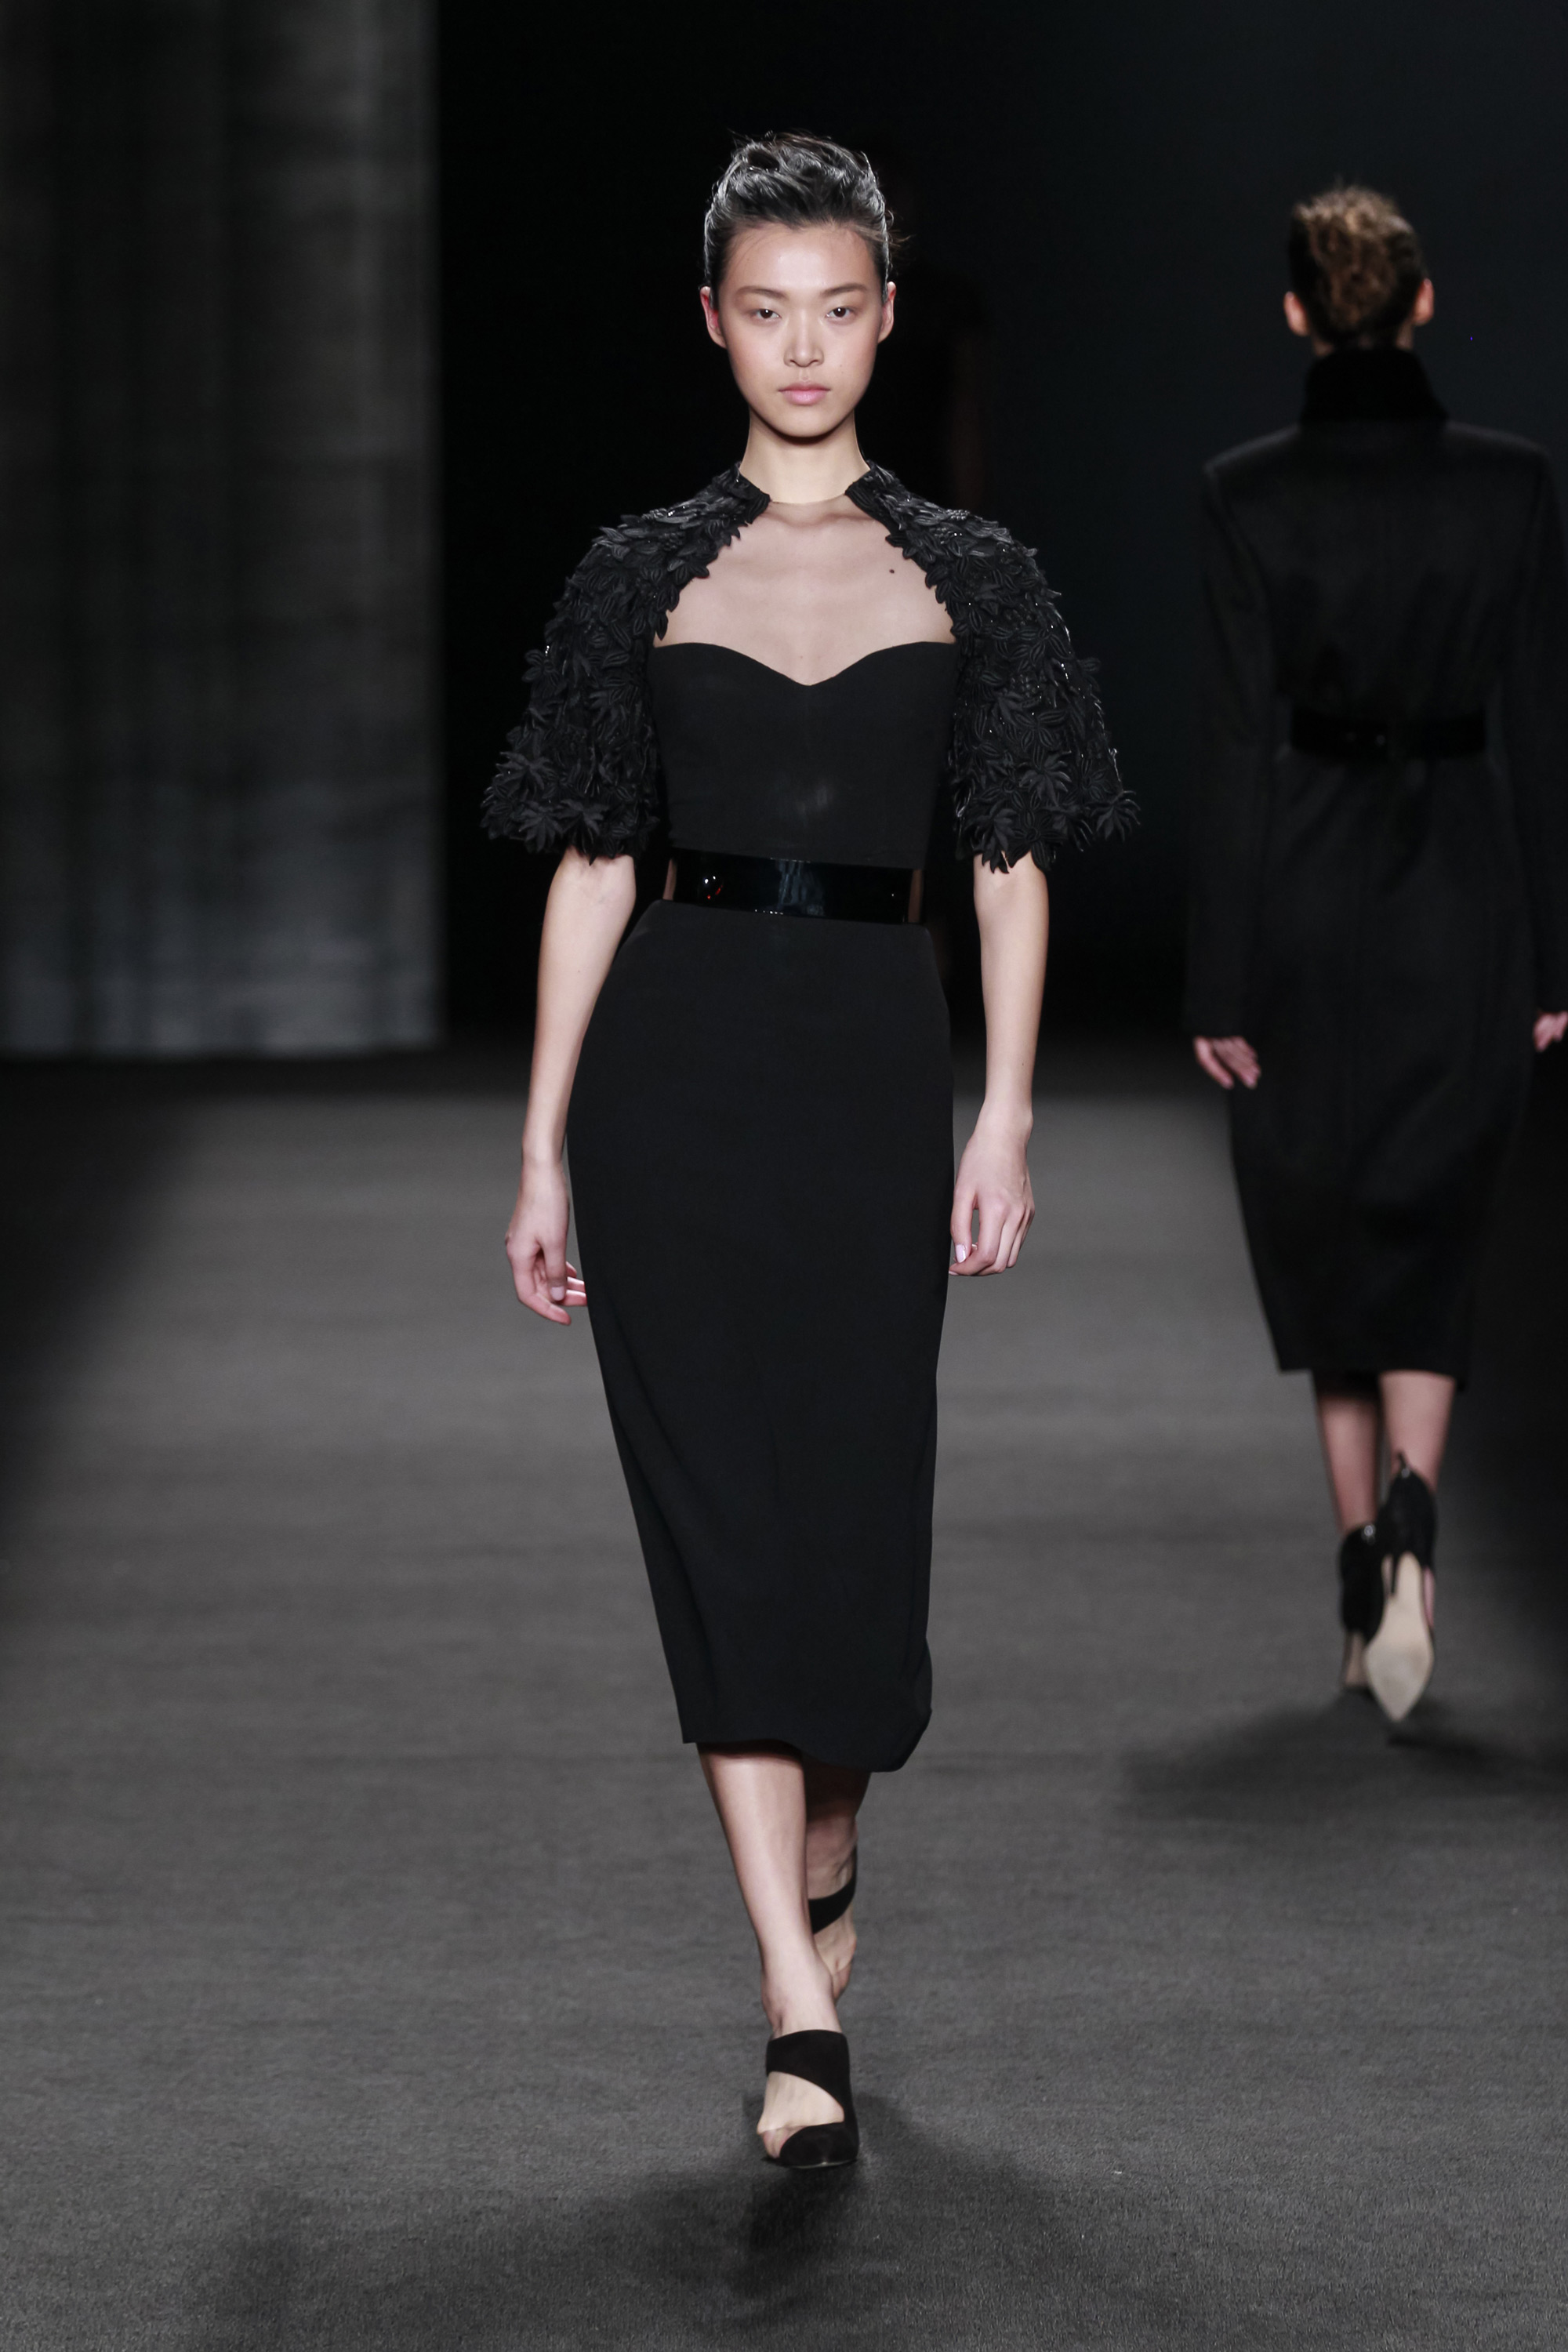 19_fw14dlr_lhuillier_203